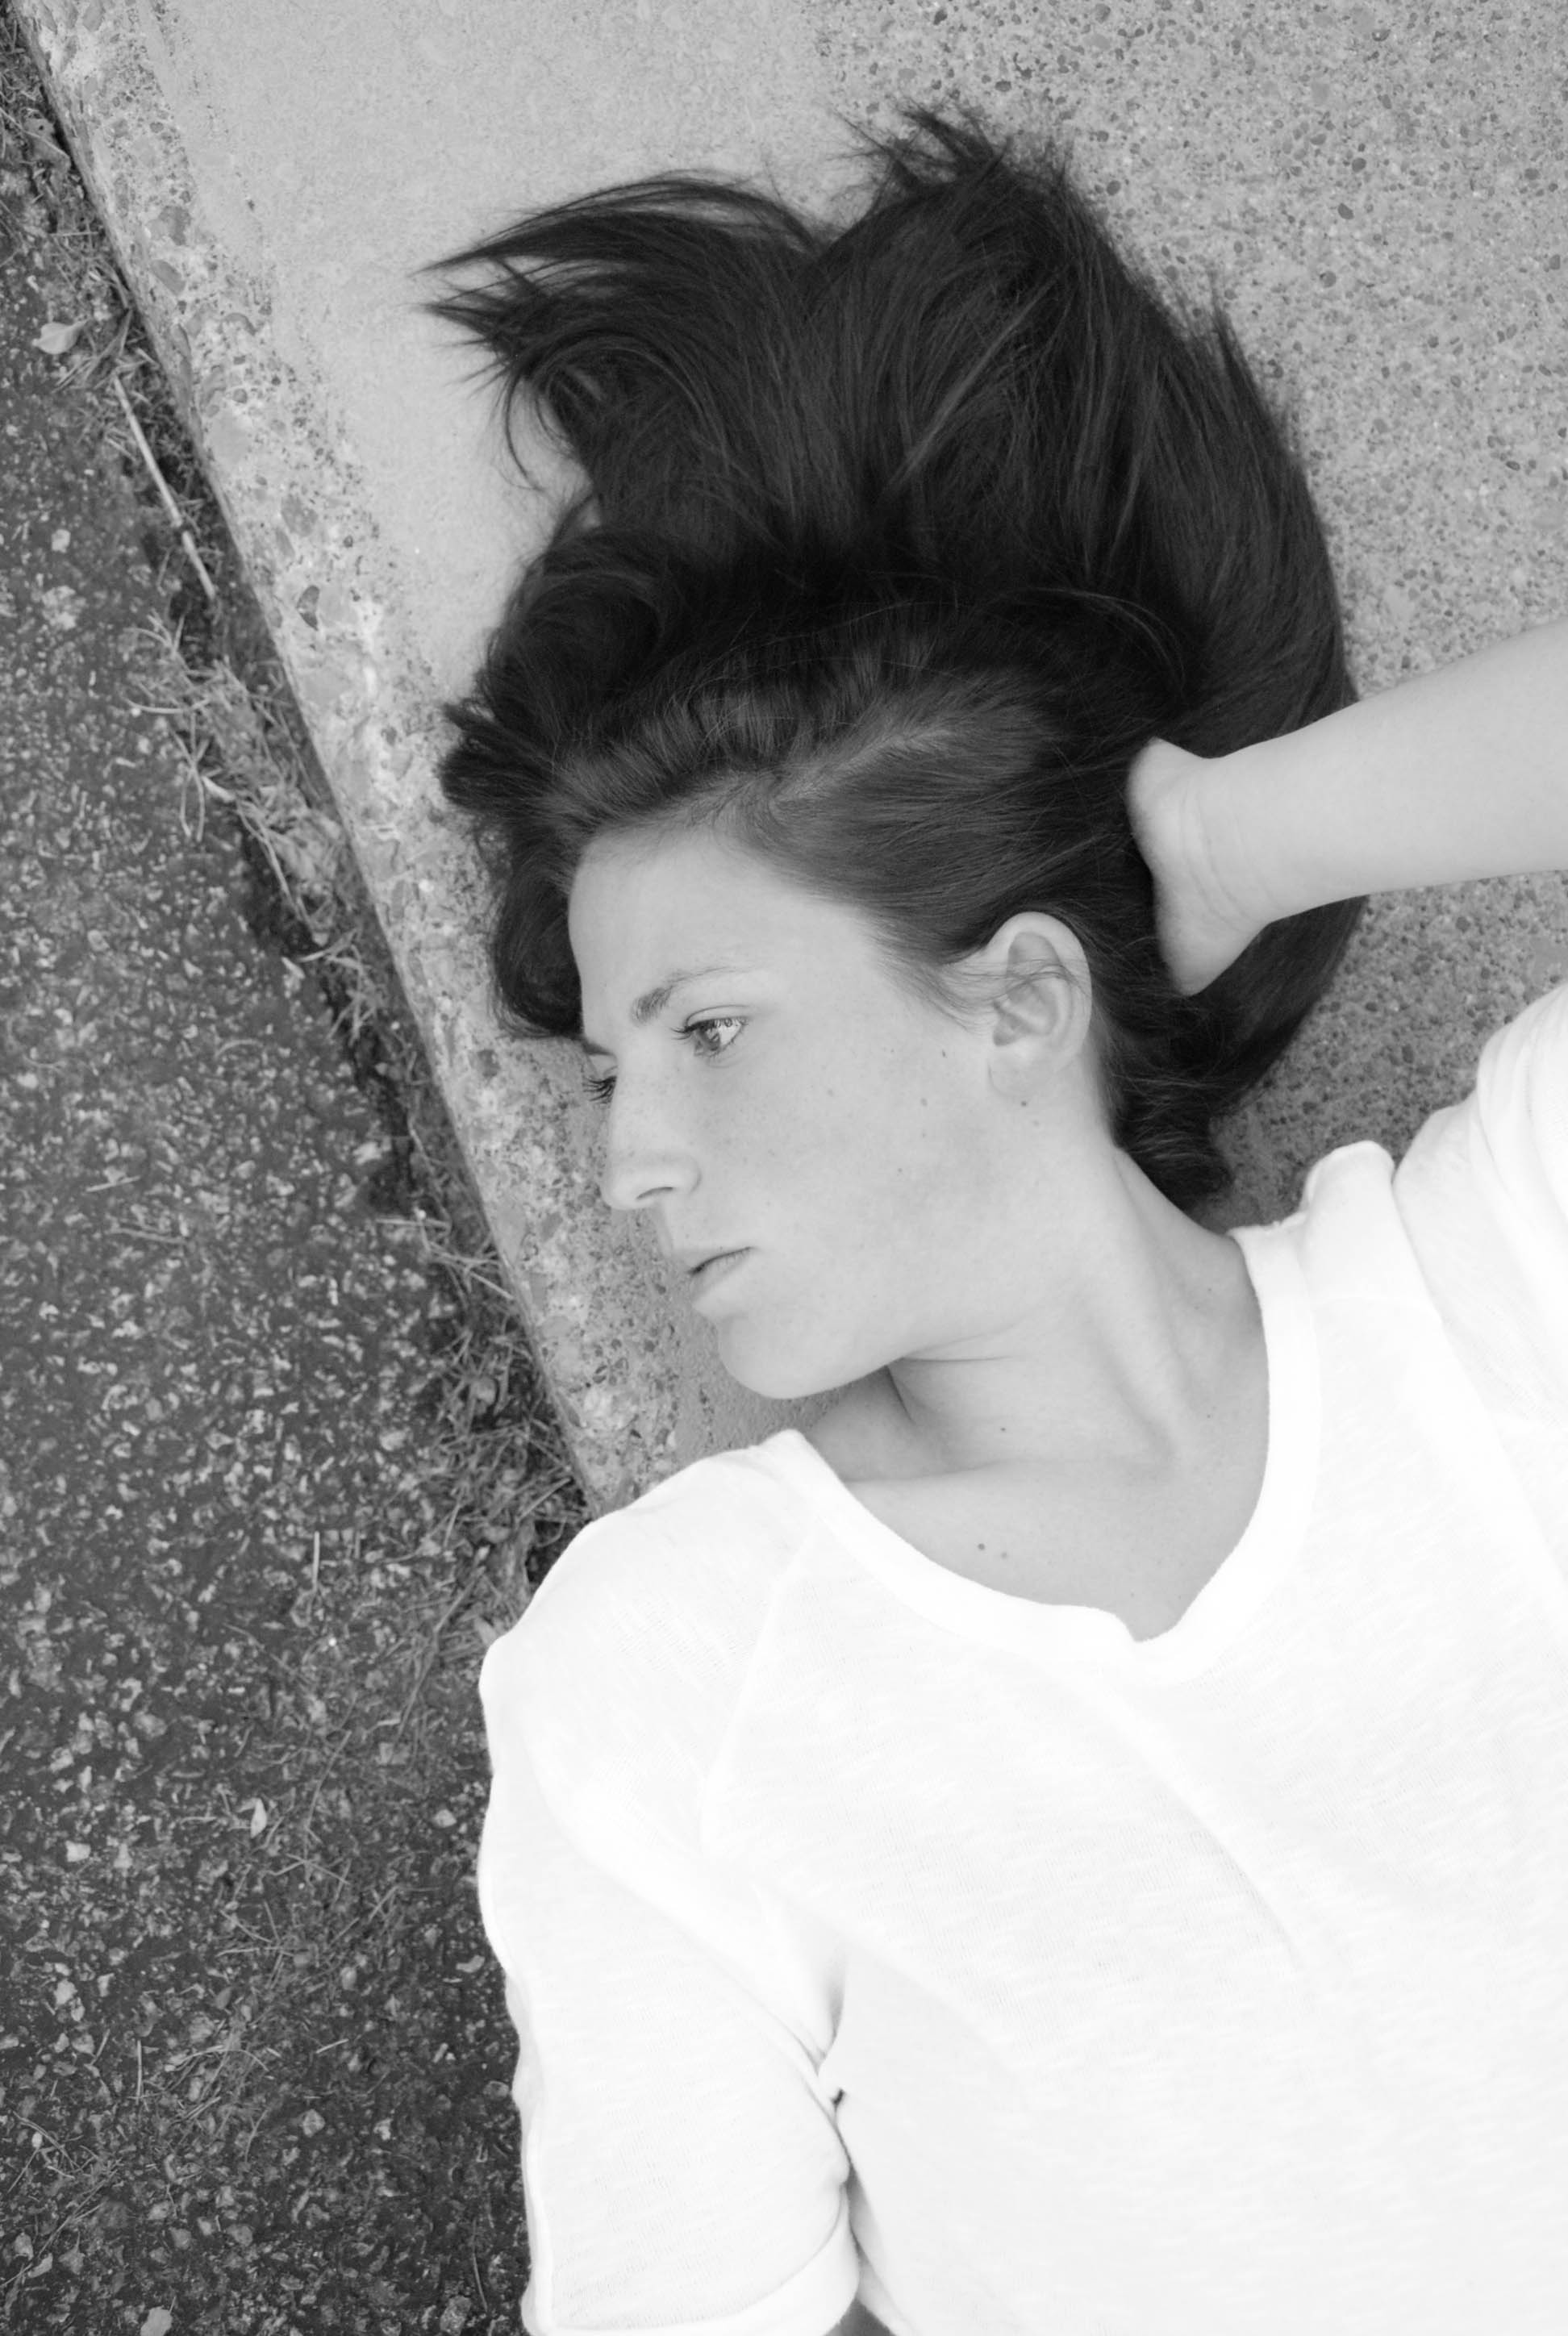 The texture of the pavement and the line of her face…..